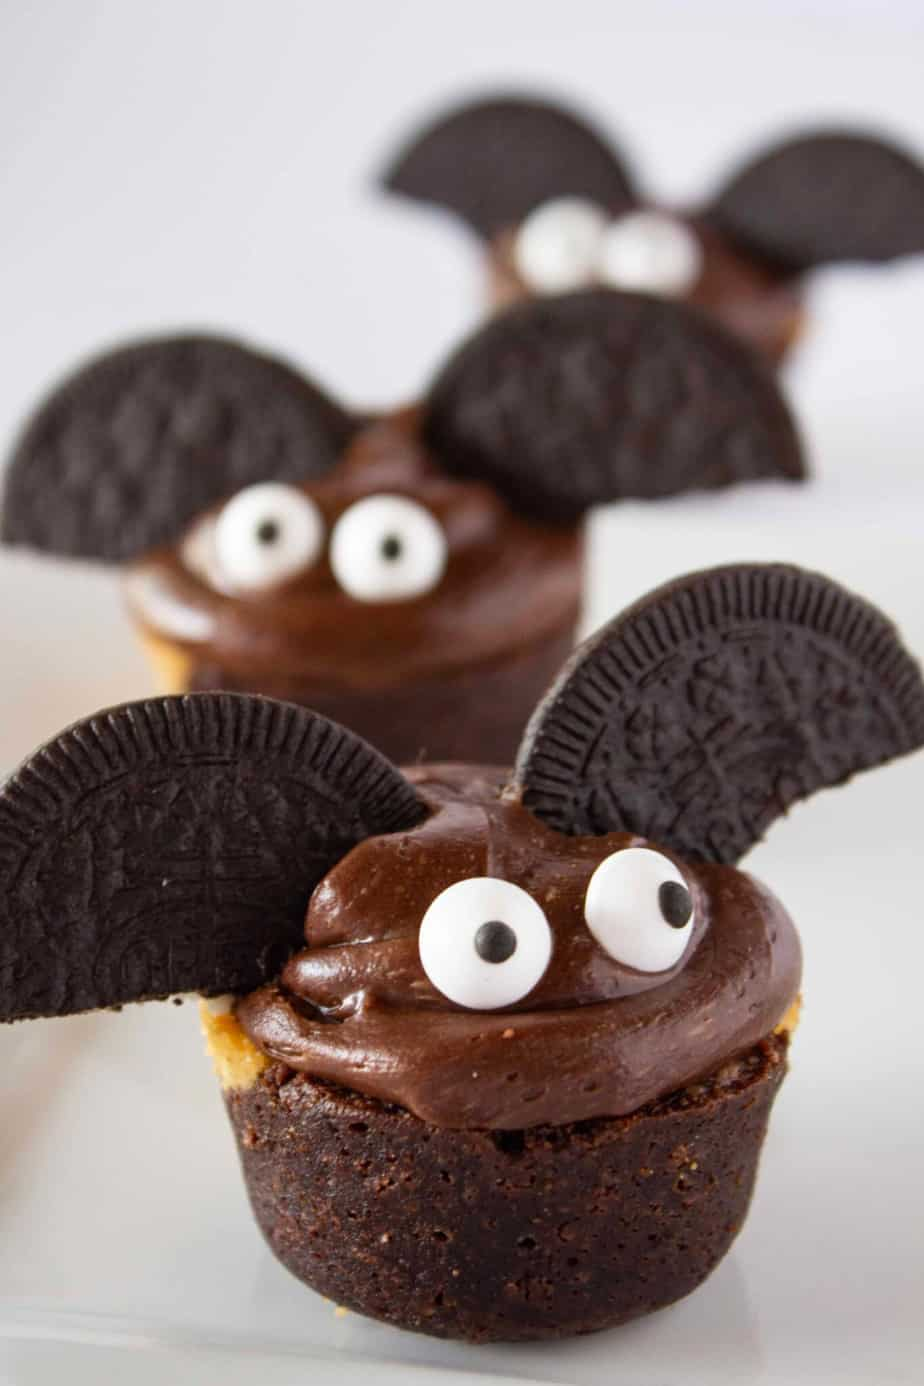 Brownie bite decorated to look like a bat with frosting and Oreo cookies